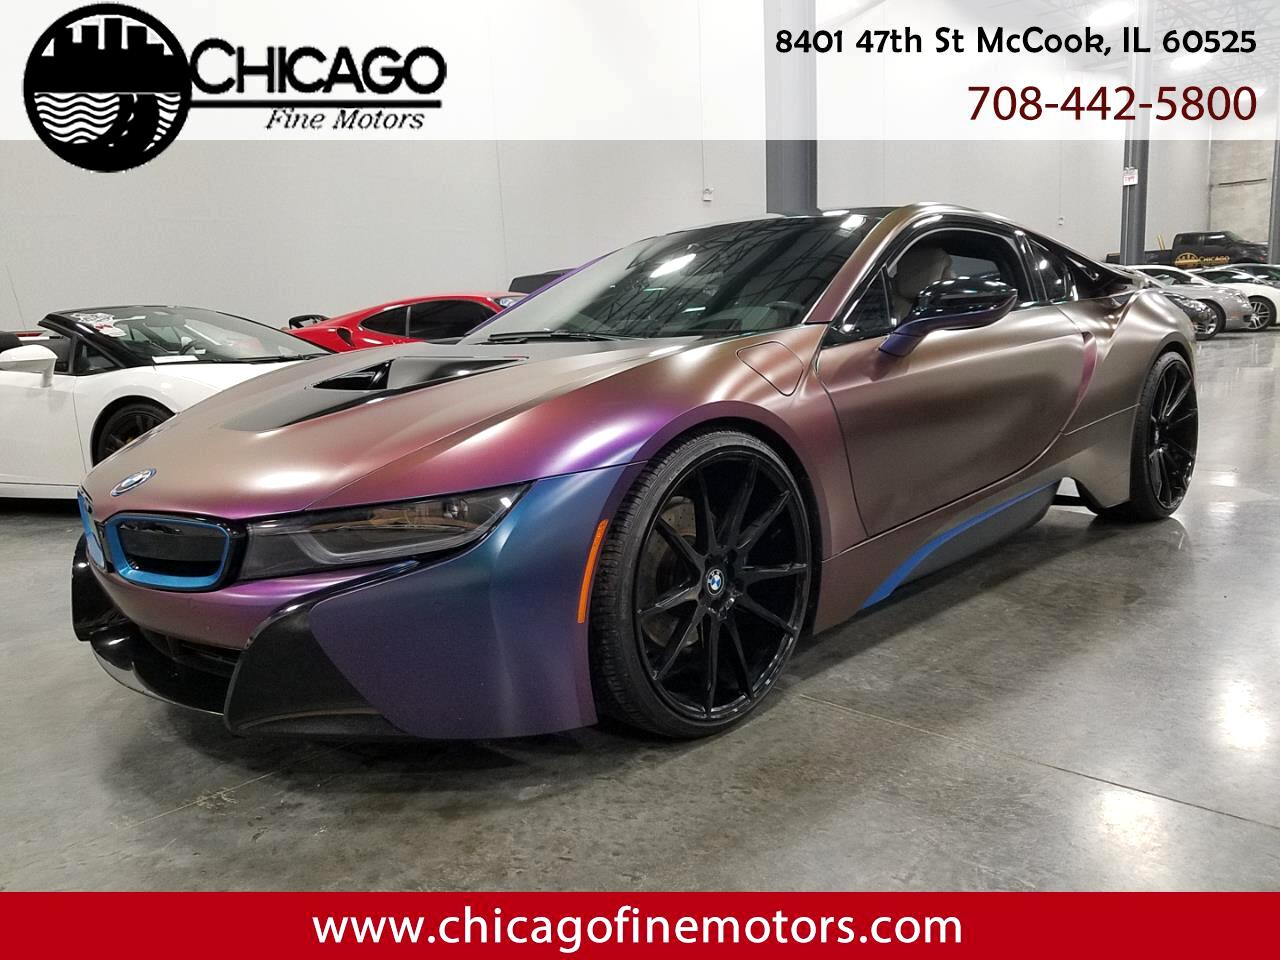 2015 BMW i8 TERA WORLD